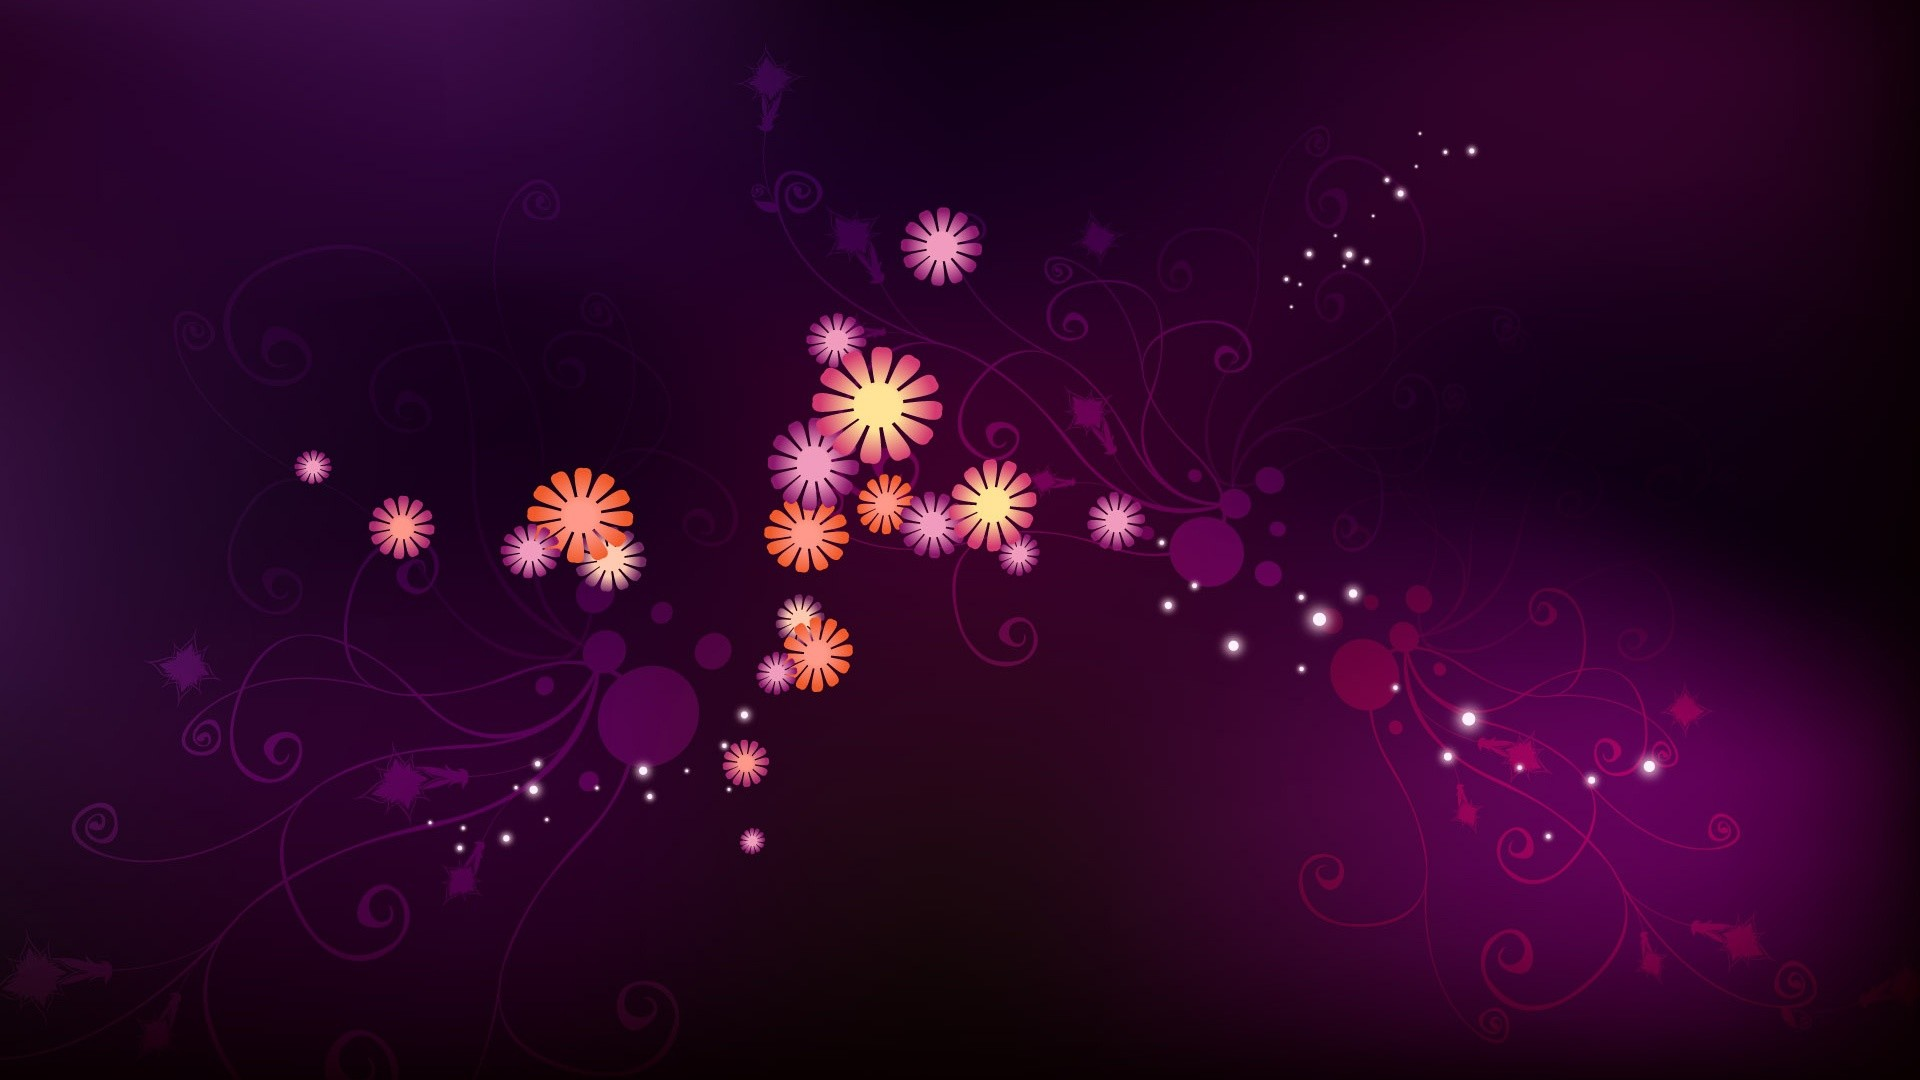 1920x1080, Animated Wallpaper Backgrounds Moving Desktop - Animated Png Images For Background - HD Wallpaper